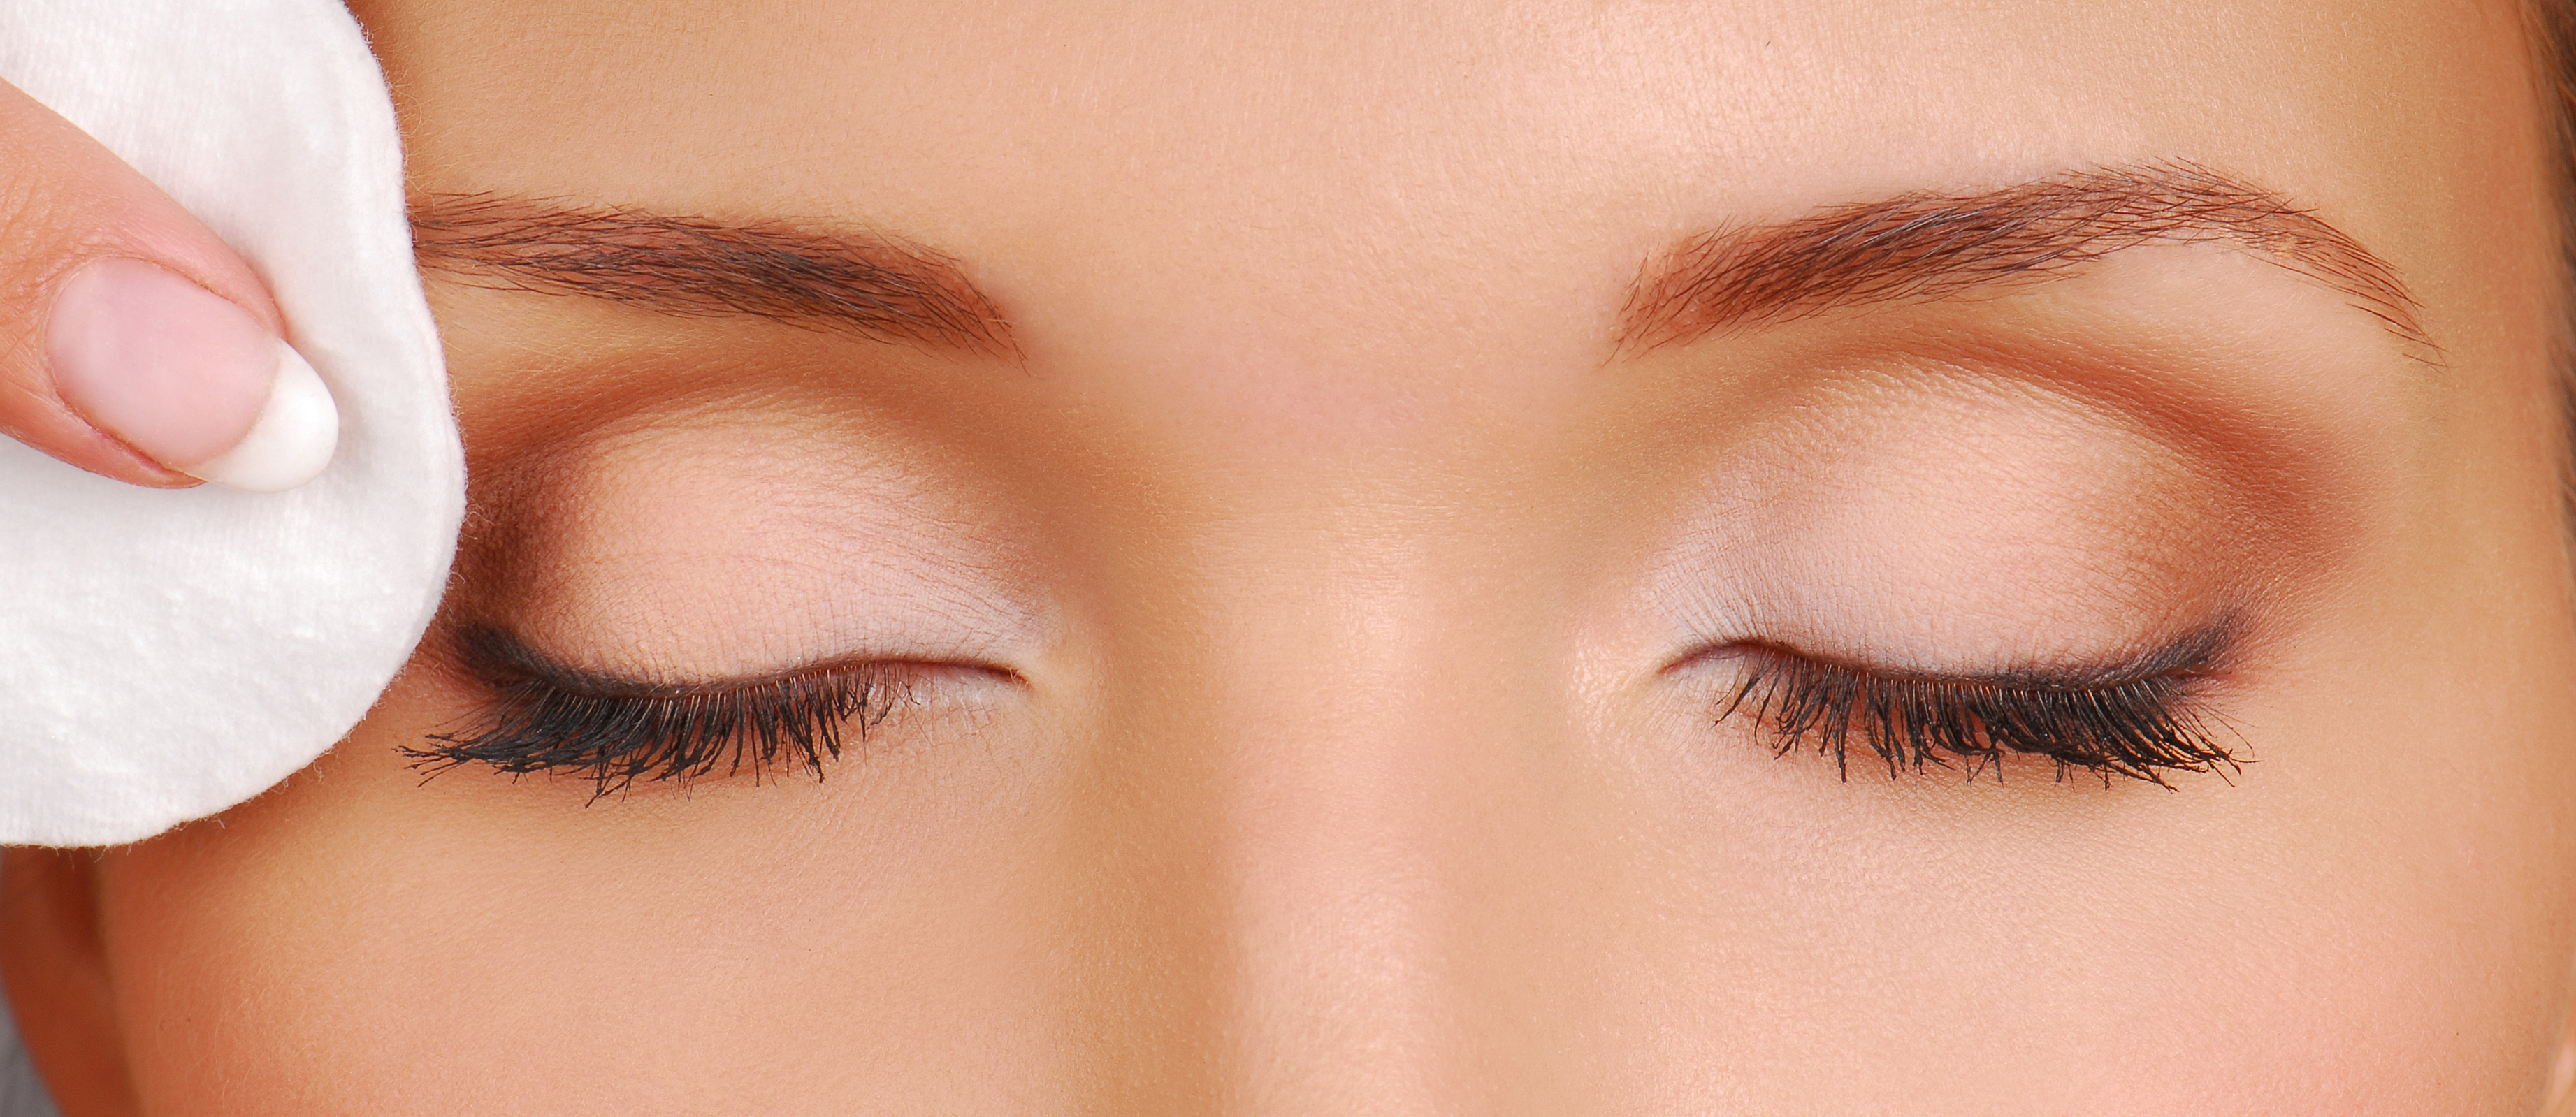 How to Get Soft Eyebrows | LEAFtv